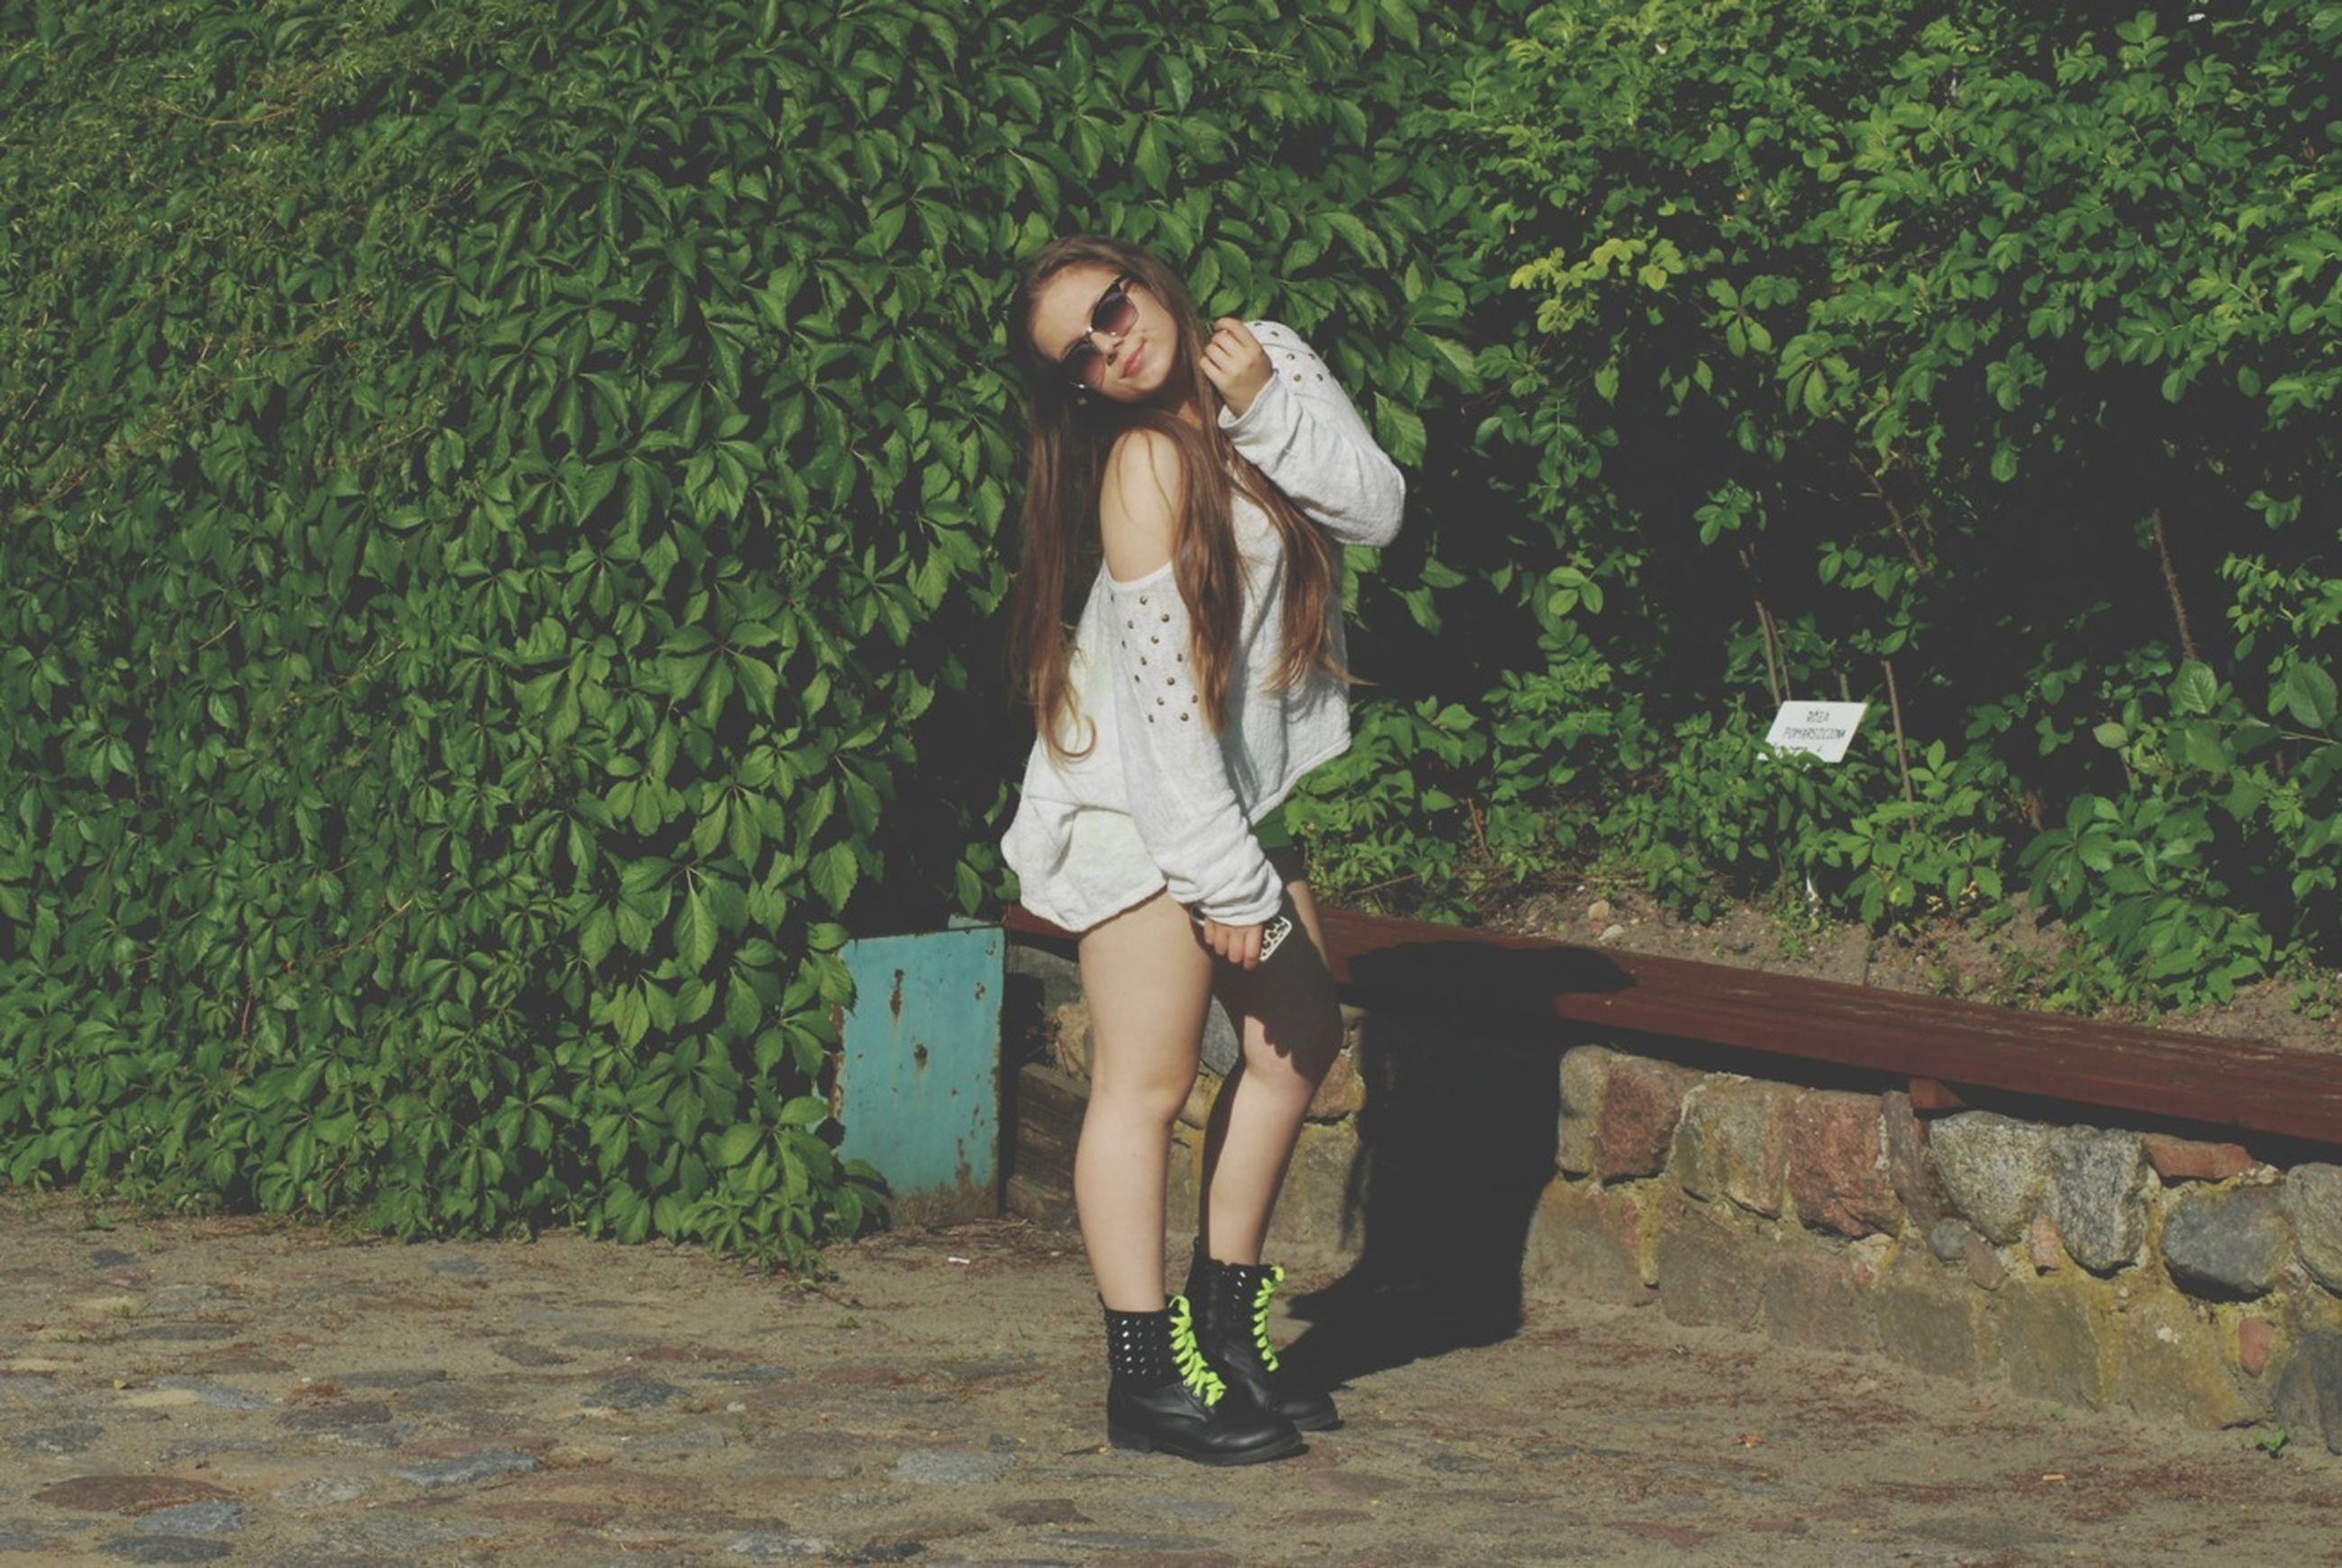 young adult, young women, casual clothing, full length, lifestyles, person, standing, front view, leisure activity, portrait, looking at camera, long hair, dress, smiling, beauty, fashion, sensuality